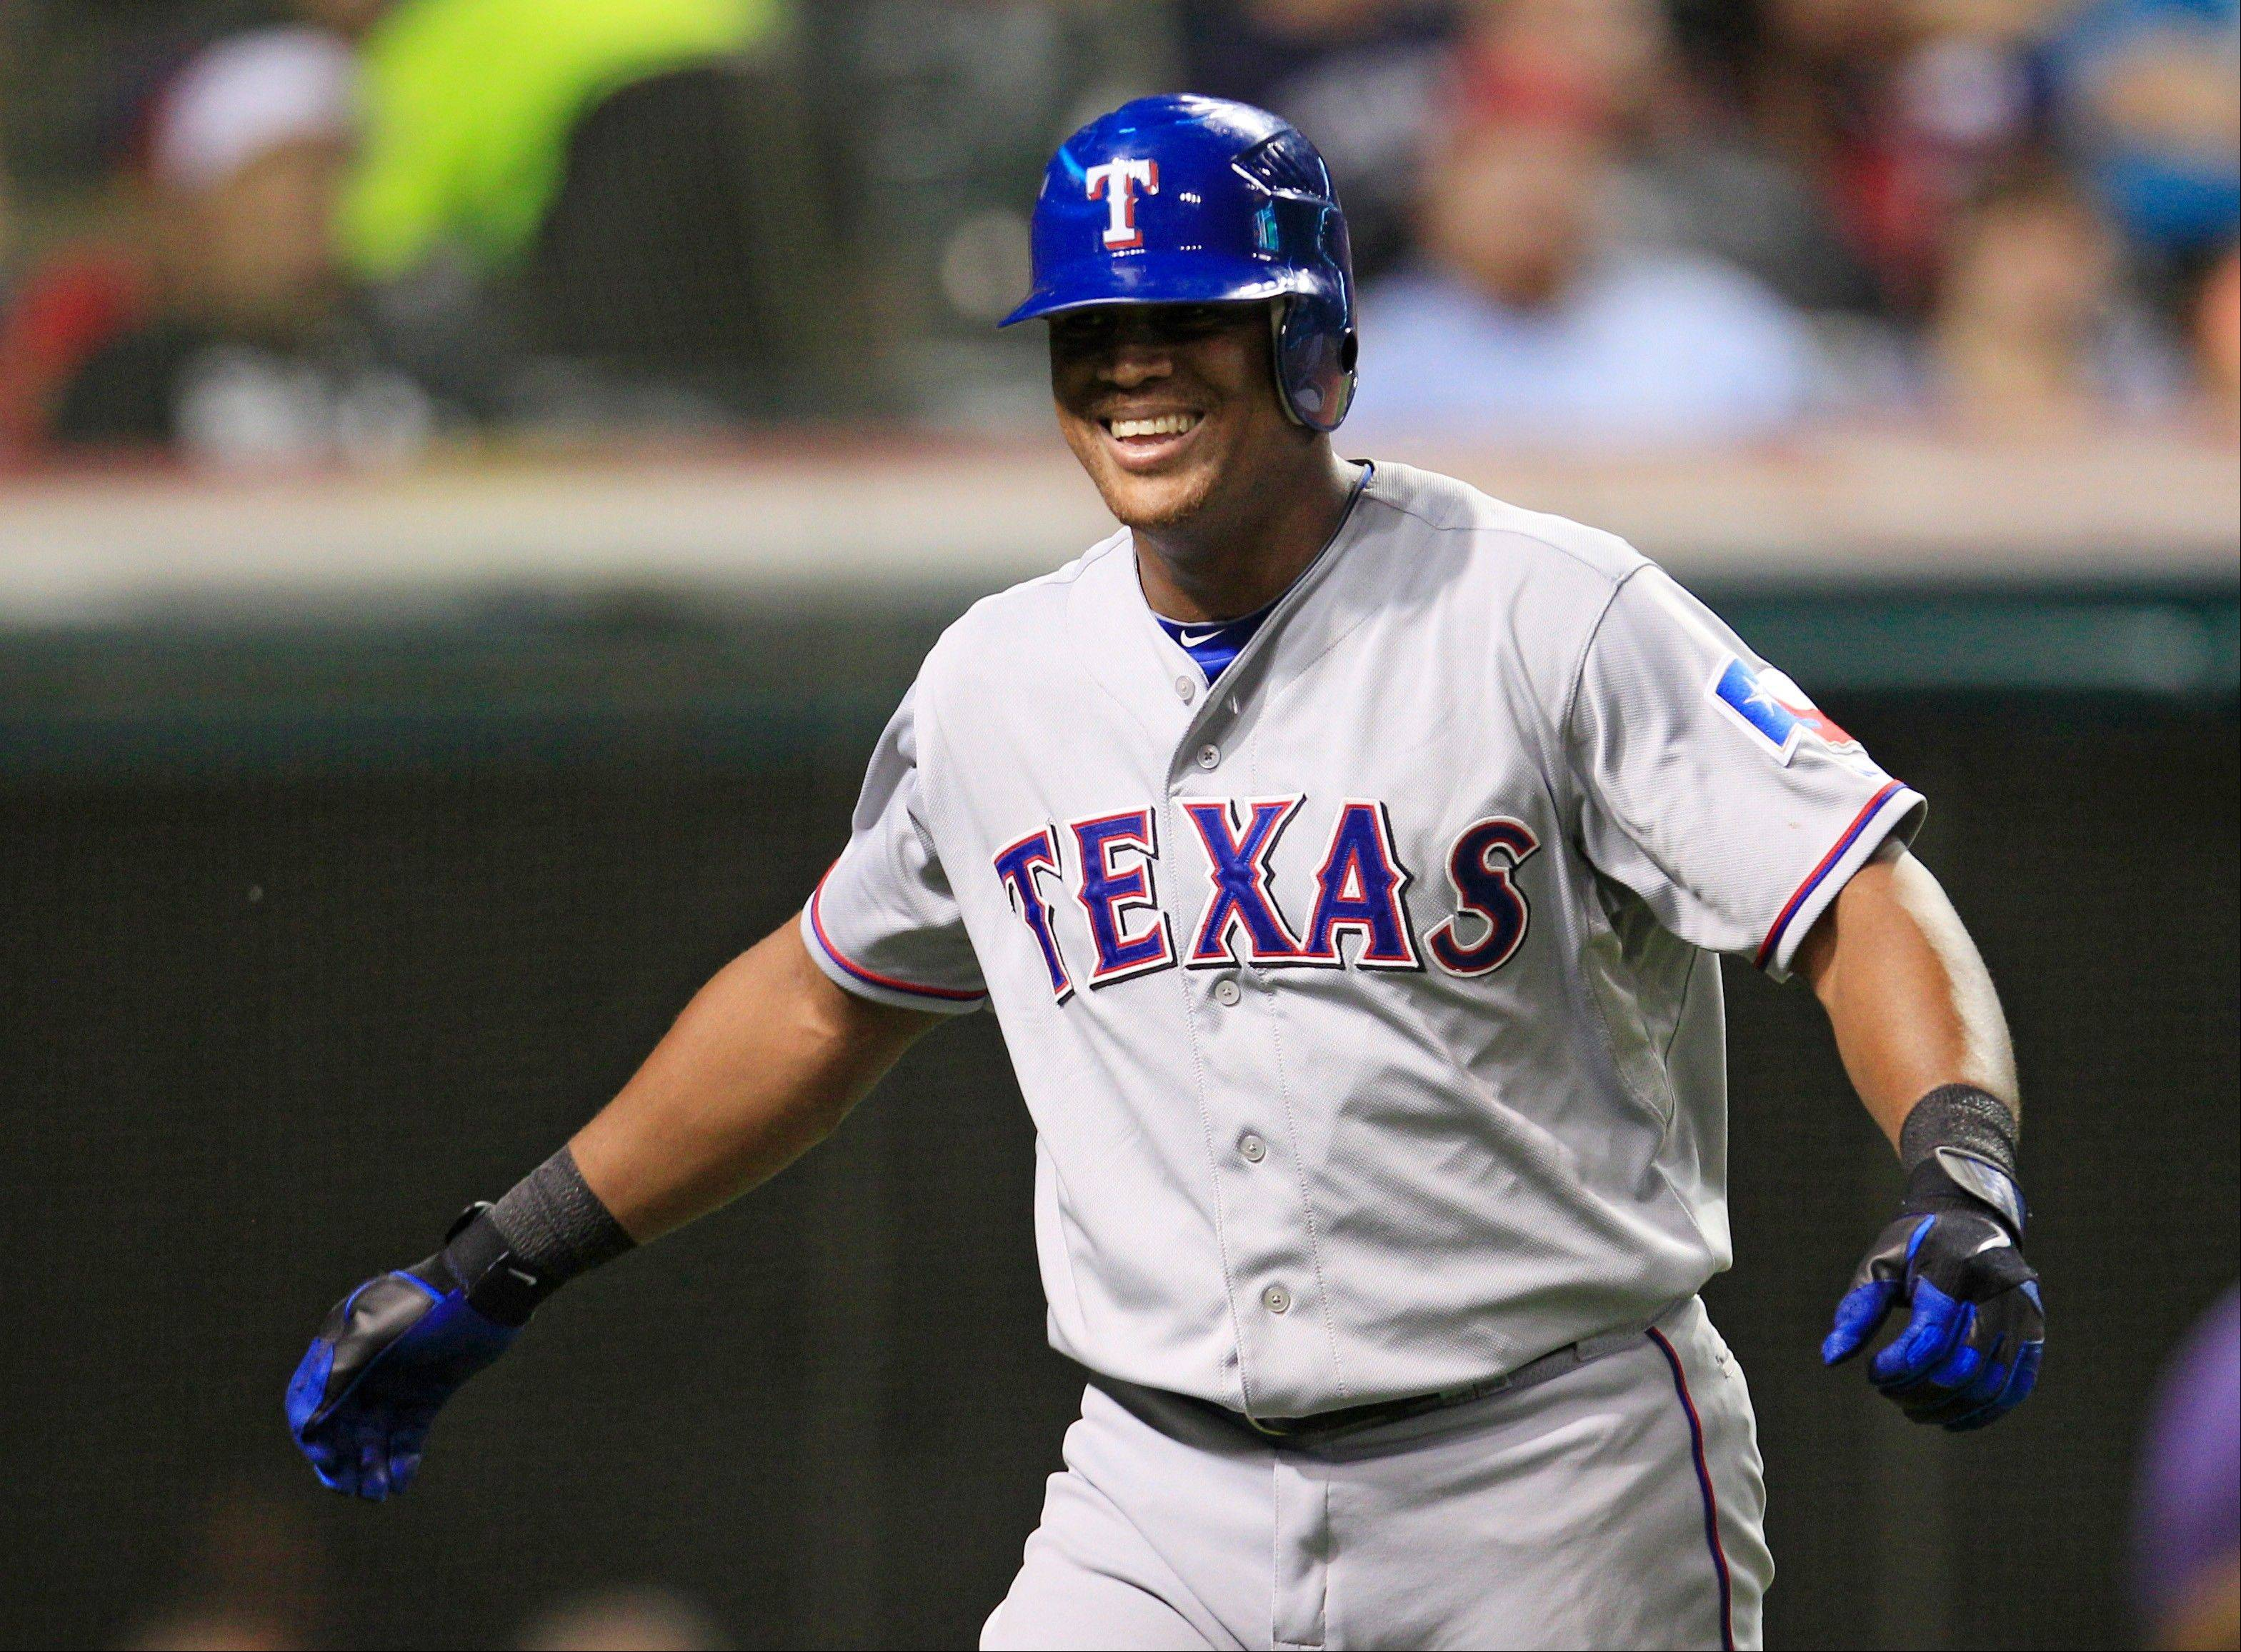 The Rangers' Adrian Beltre hit two doubles and two singles Friday night in Cleveland.